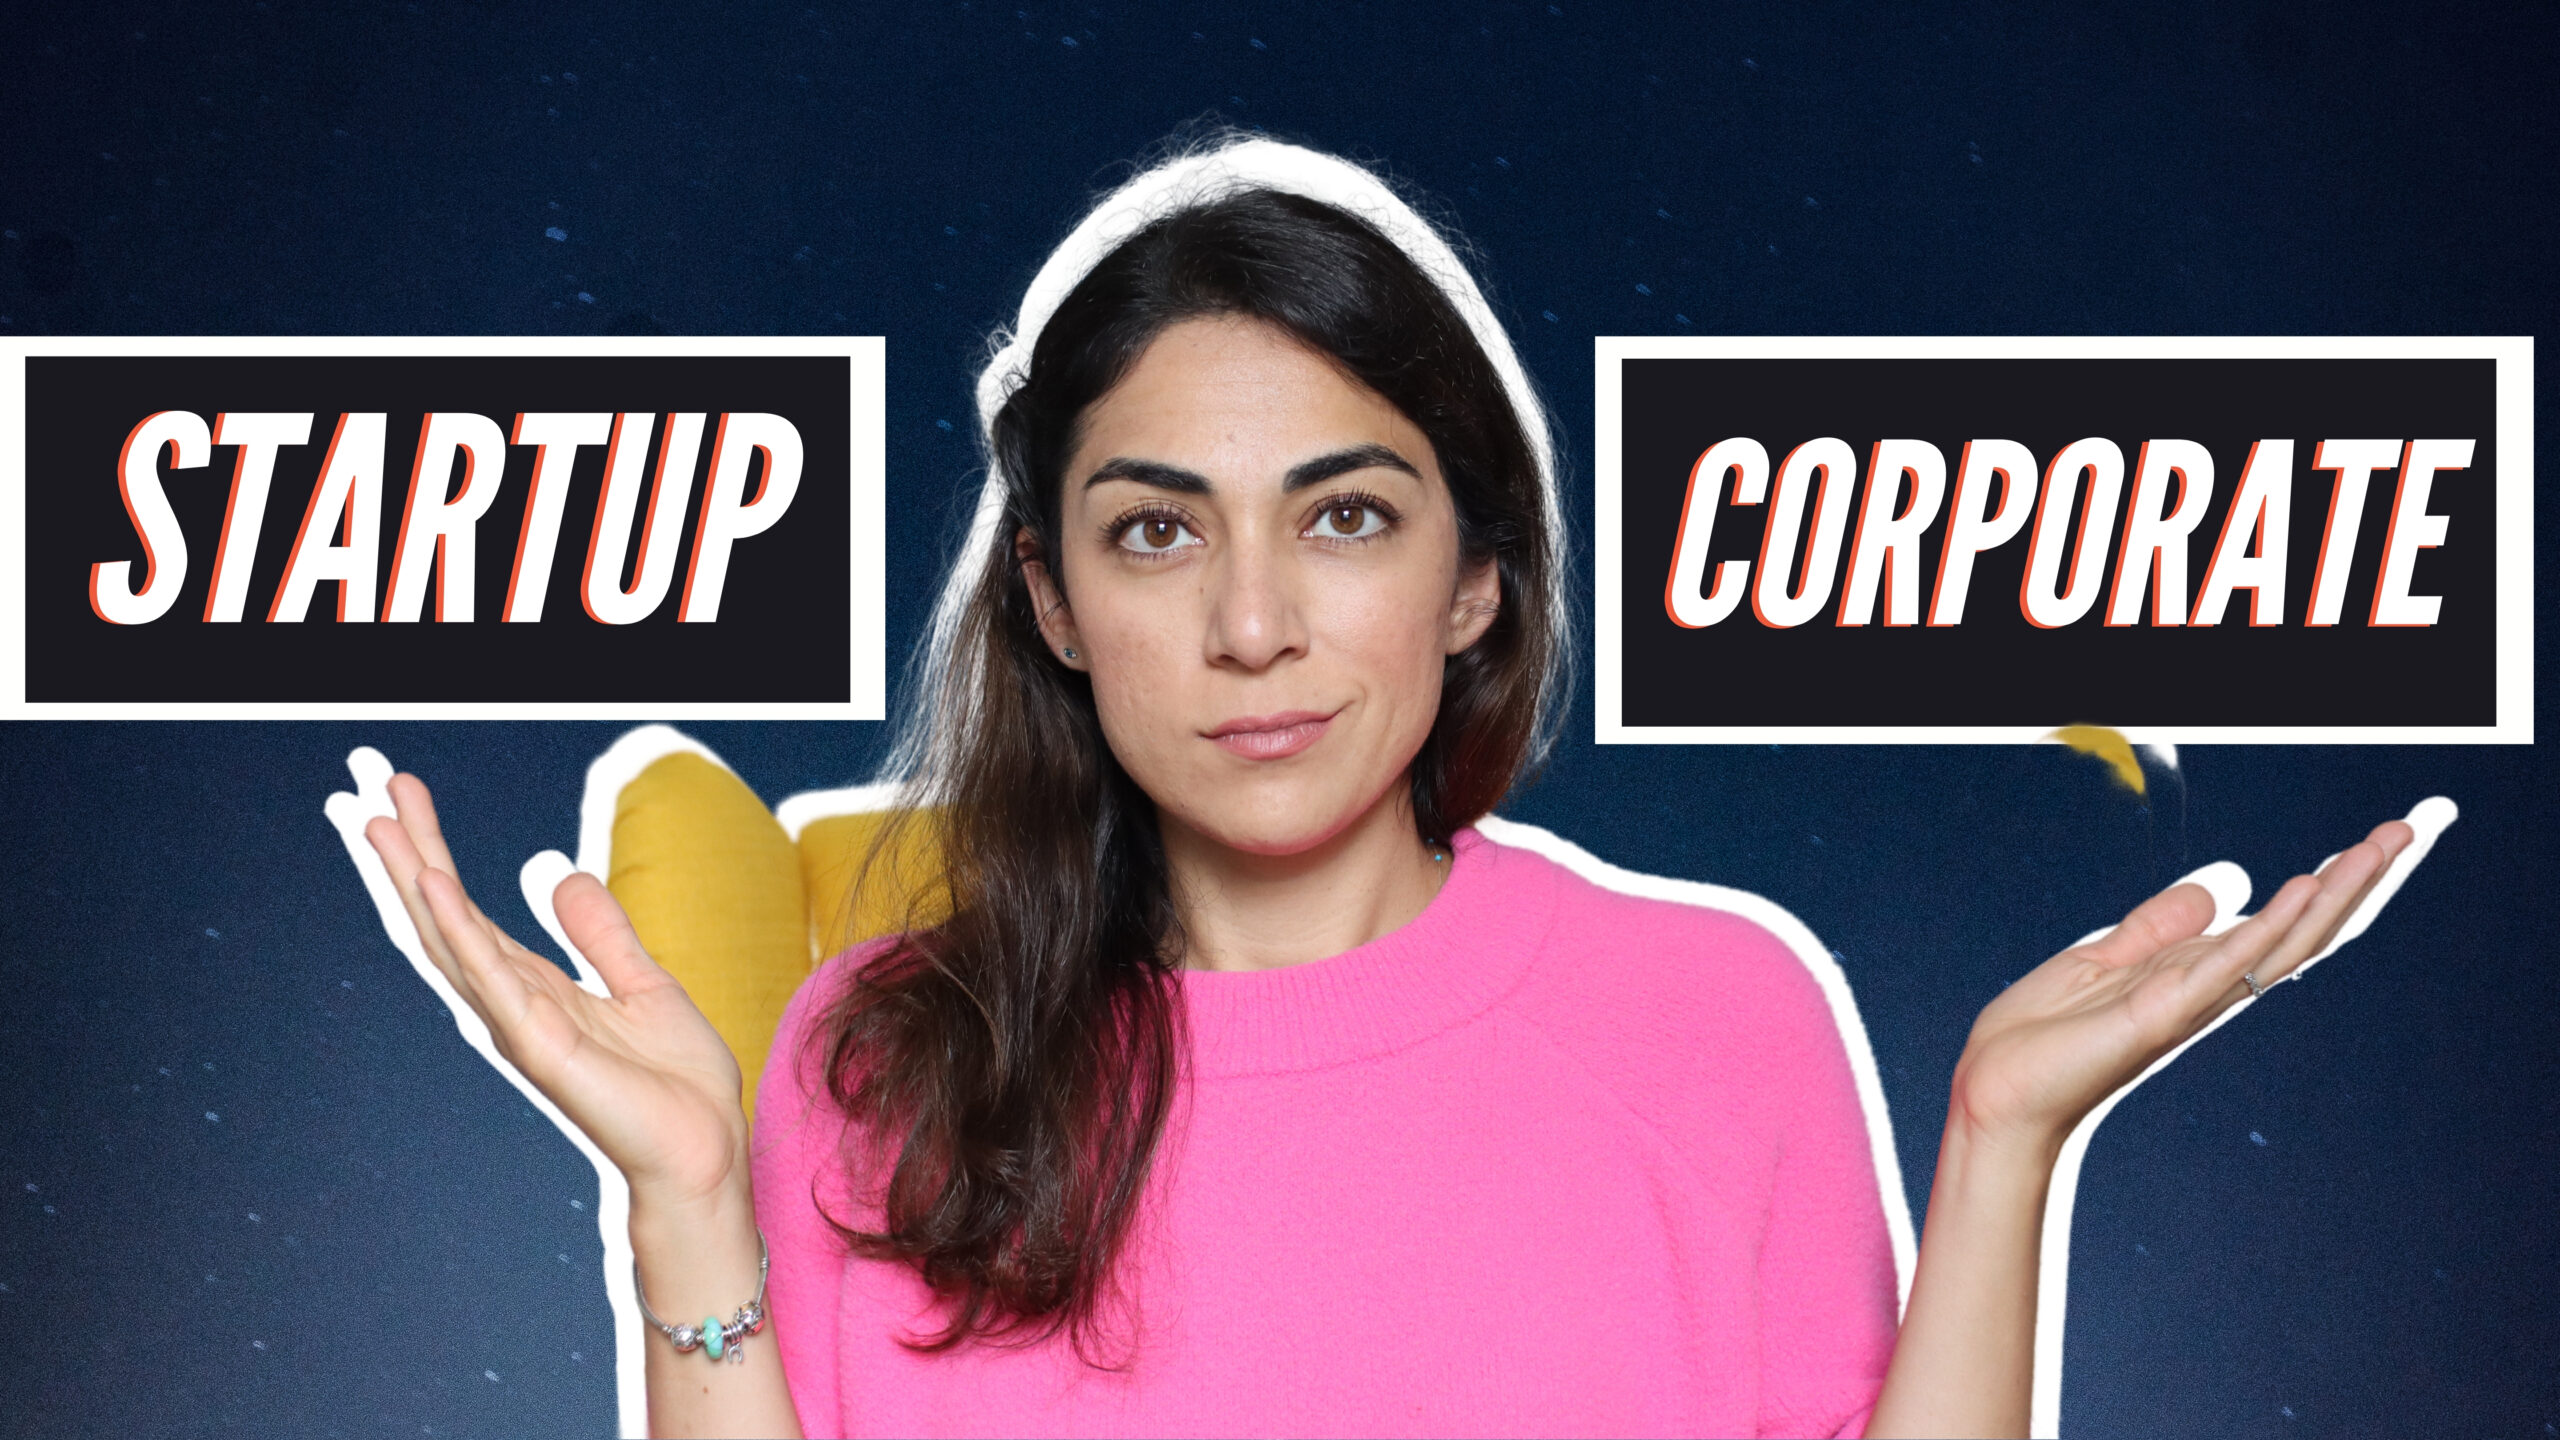 Startup vs. Corporate – which is better for a successful marketing career